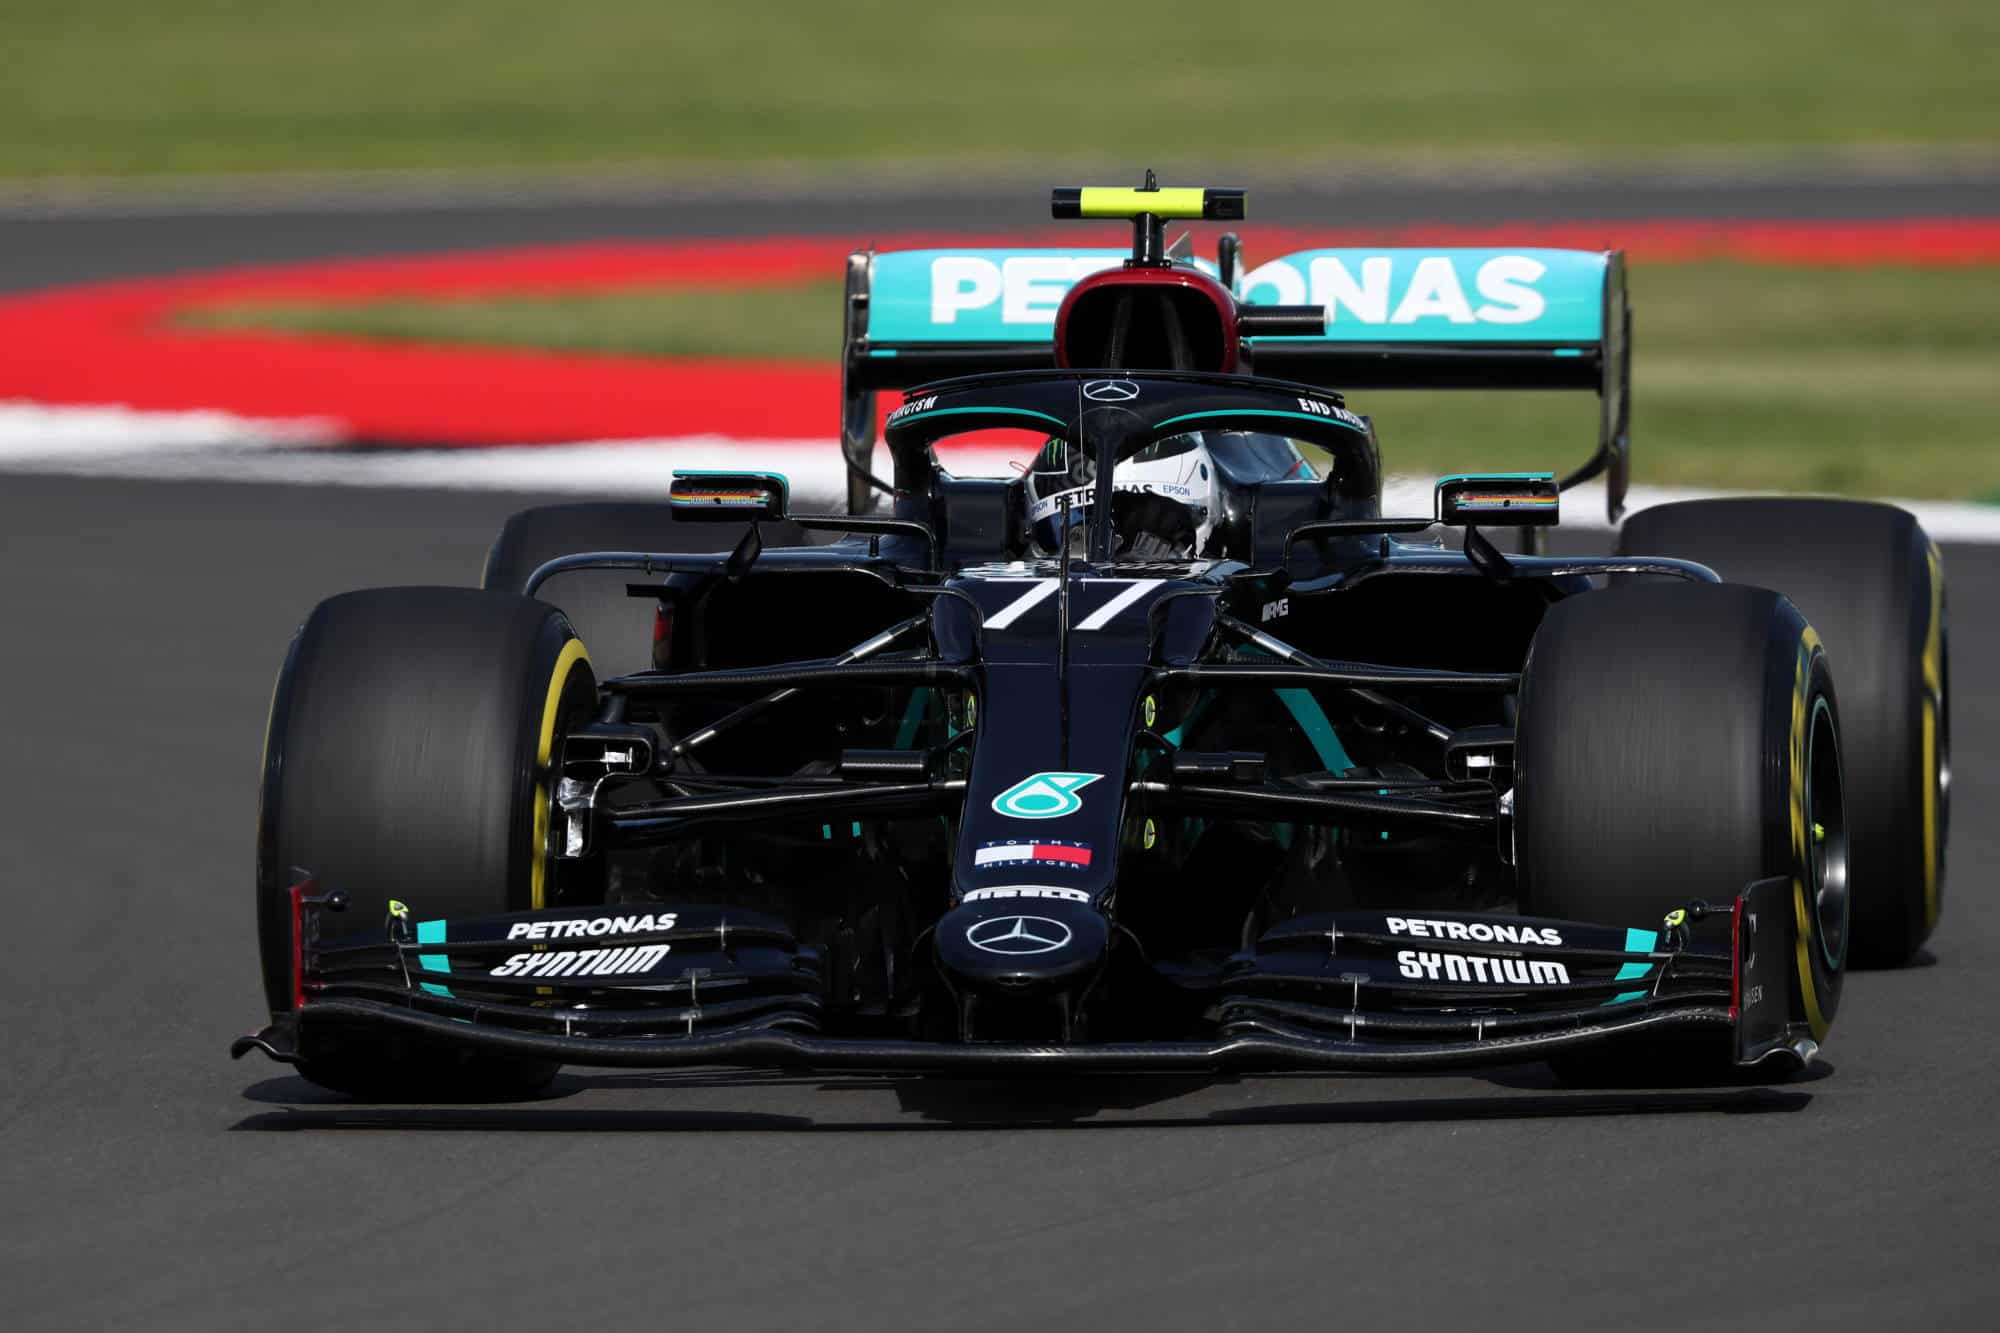 2020 British GP Bottas Mercedes Photo Daimler